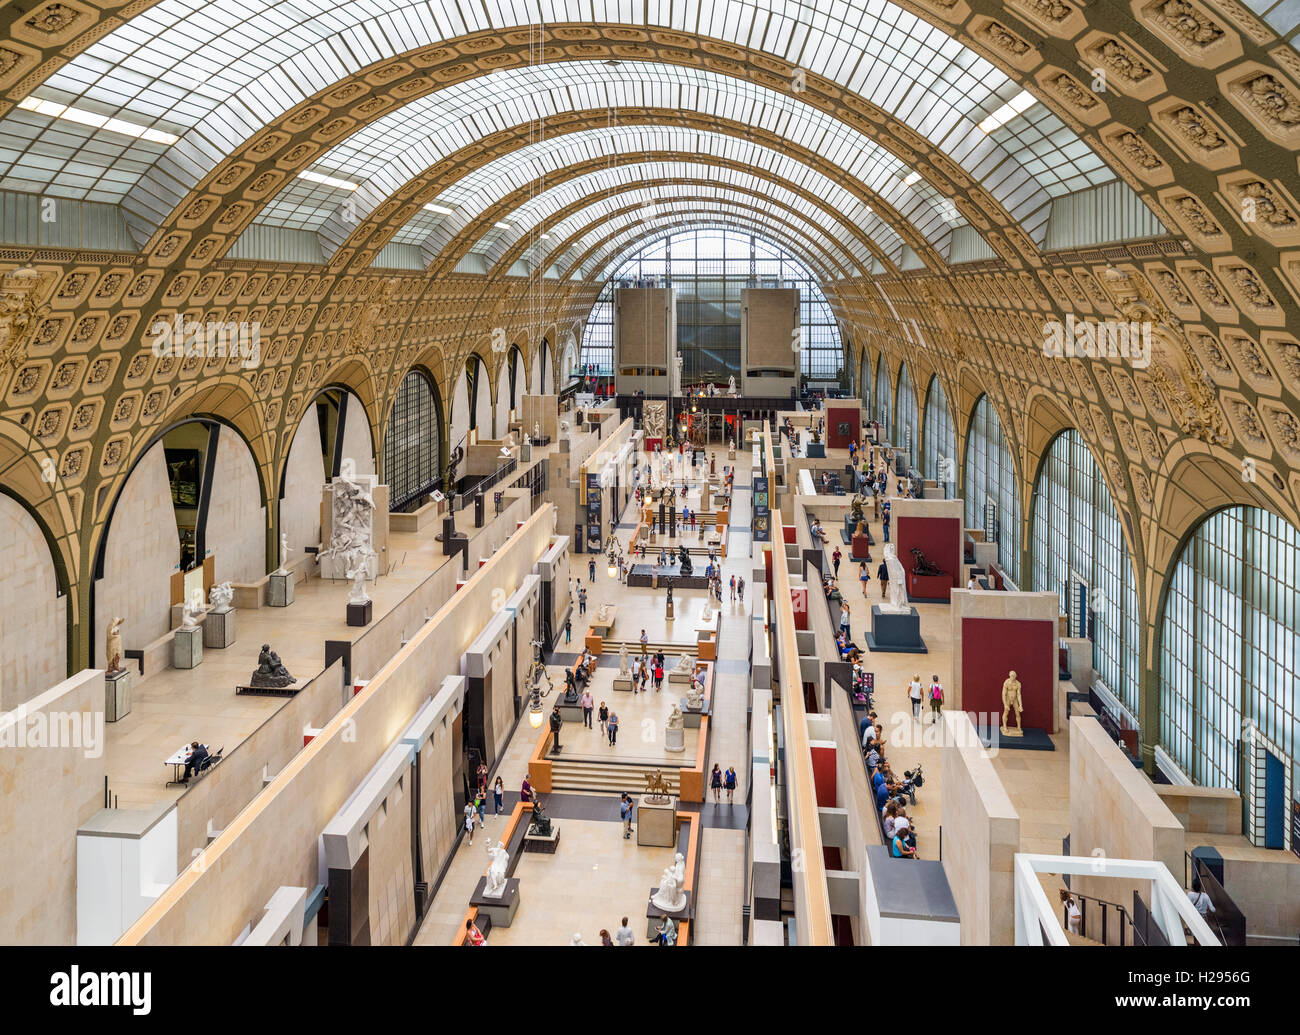 Interior of the Musée d'Orsay, Paris, France - Stock Image